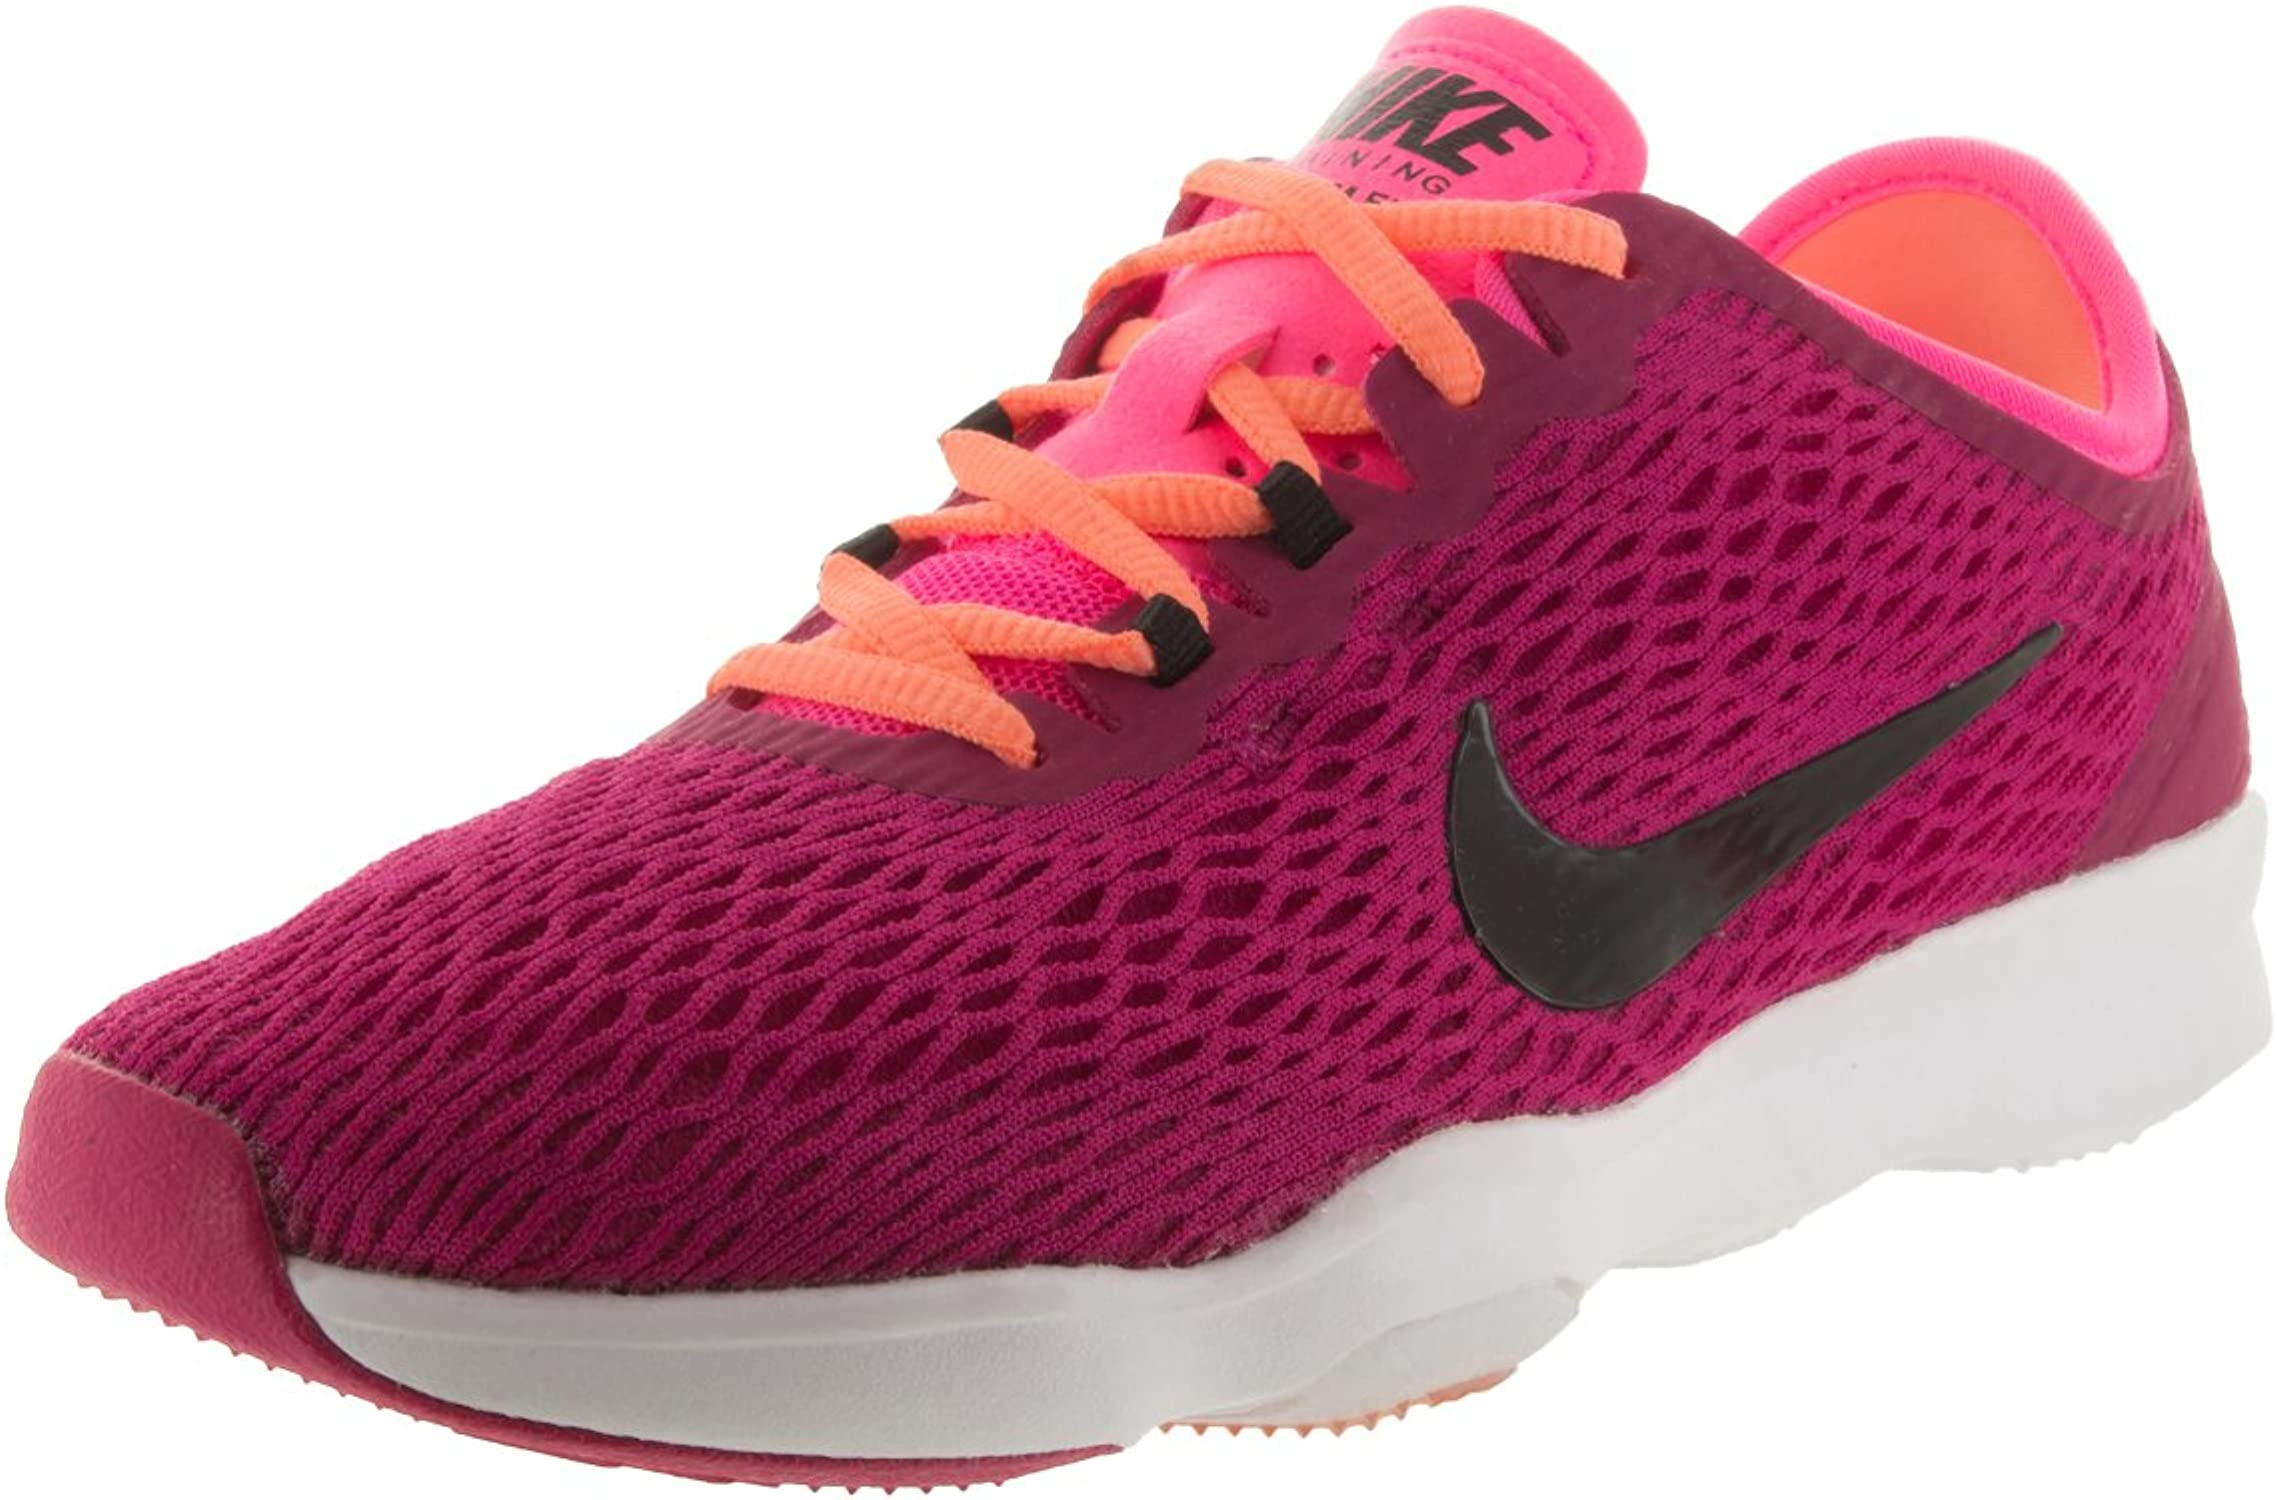 Nike WMNS Zoom FIT